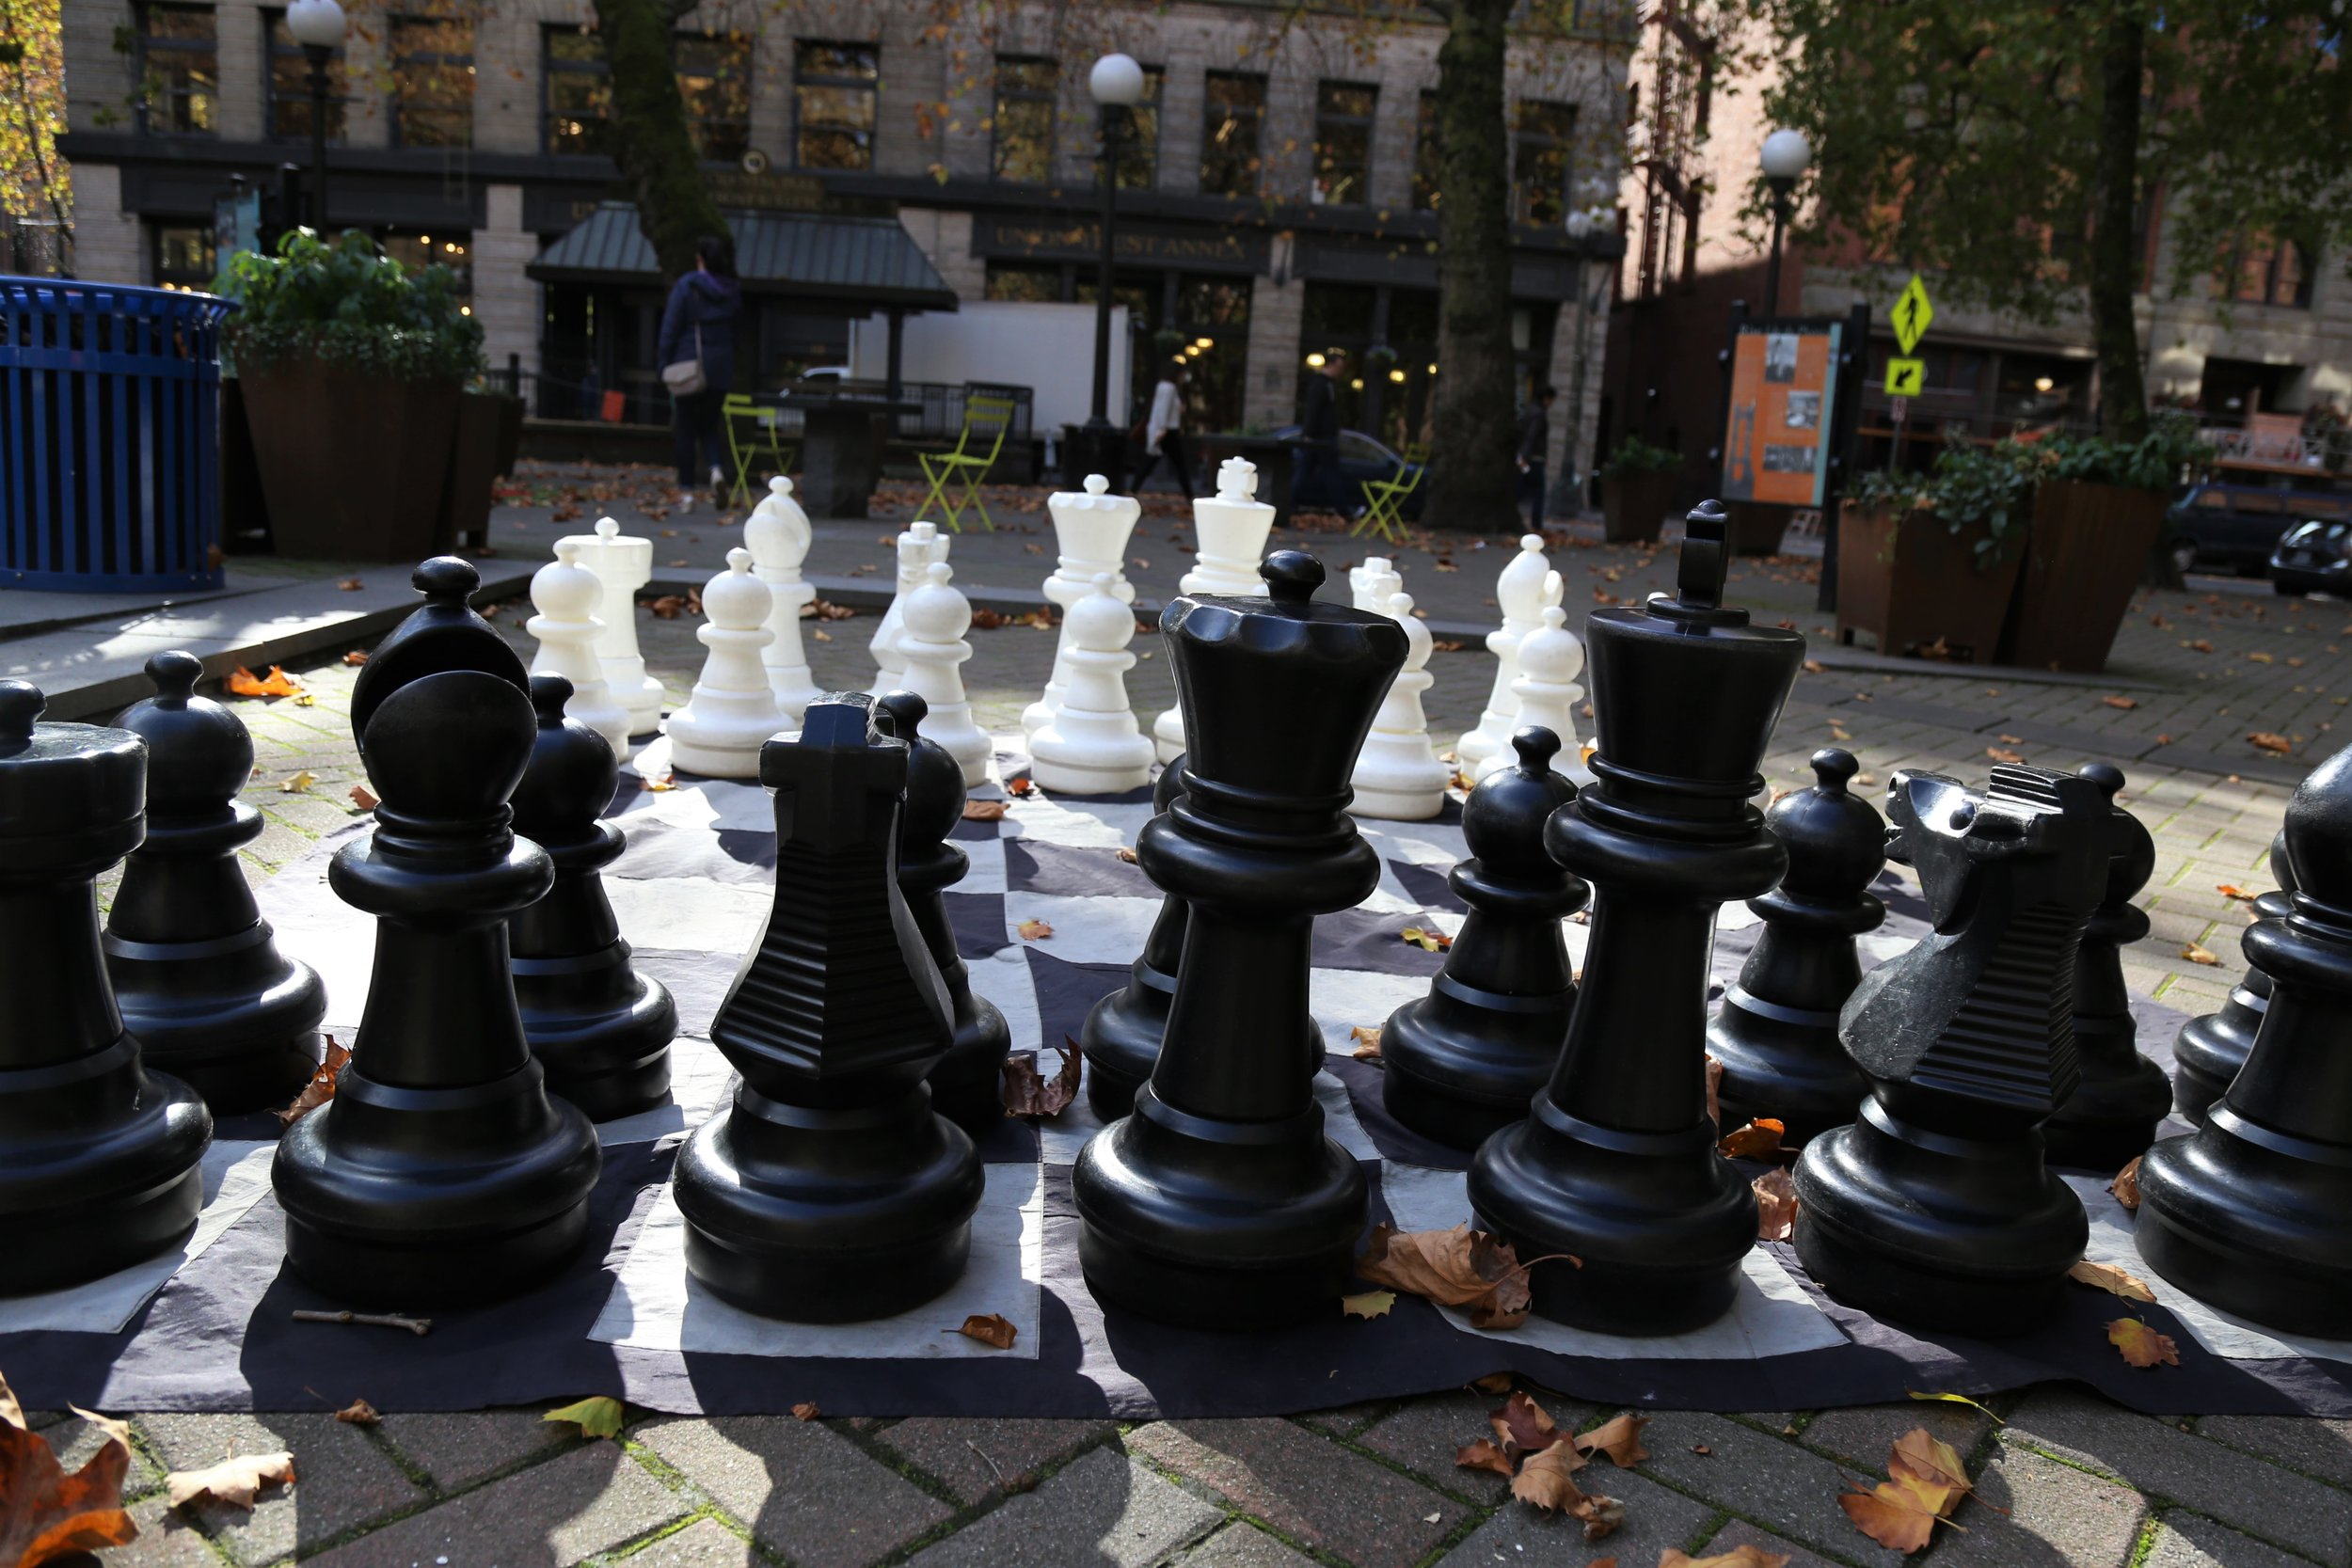 Chess at Occidental Park